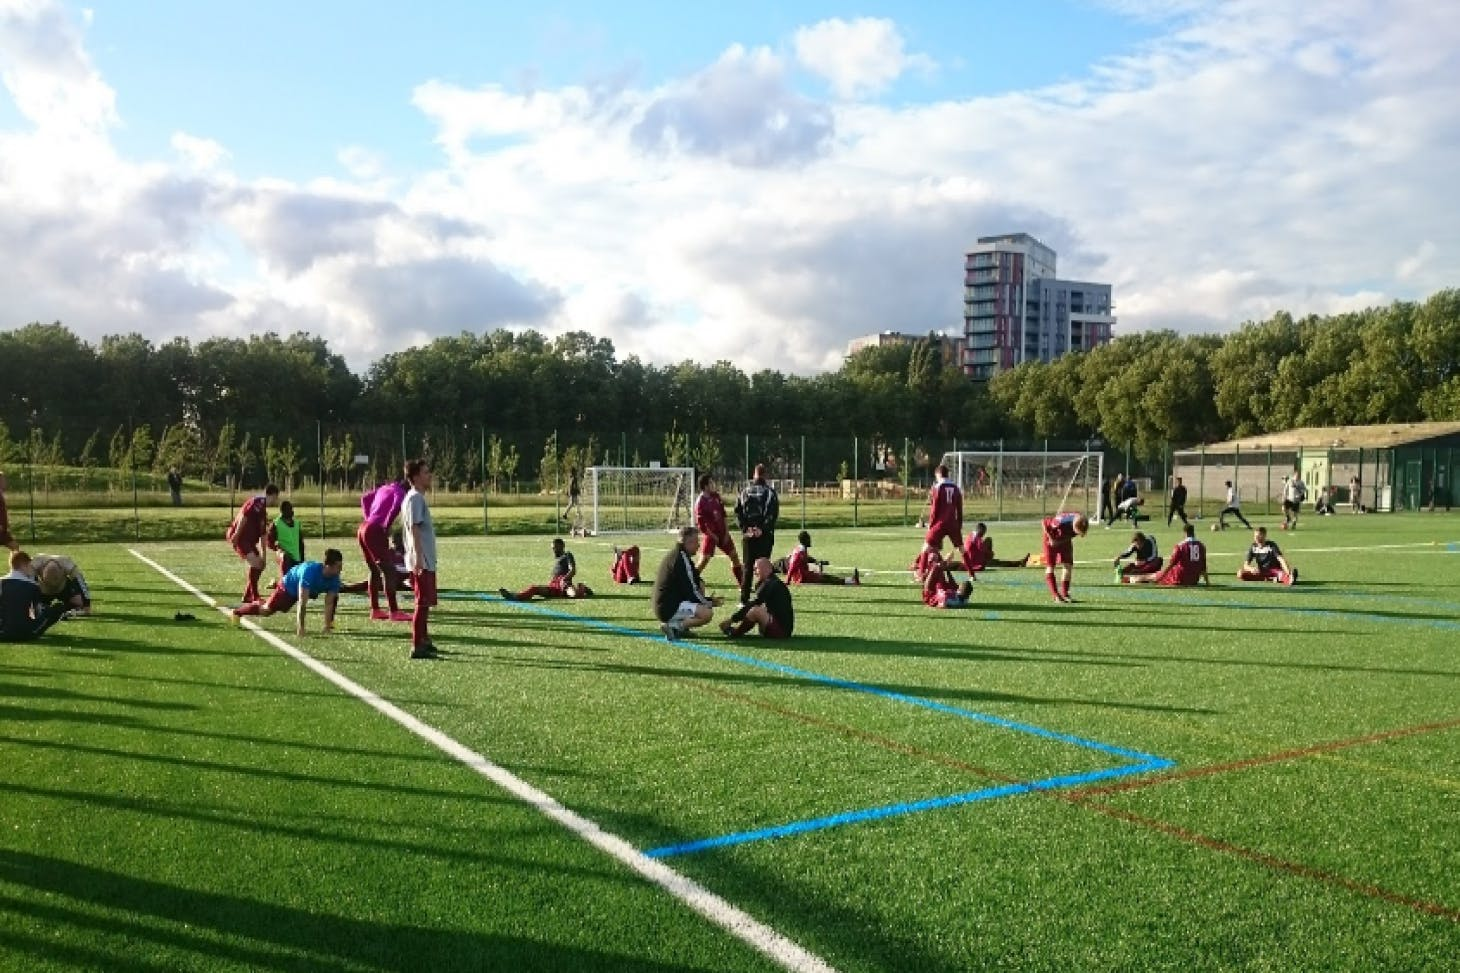 Mabley Green 5 a side | 3G Astroturf football pitch